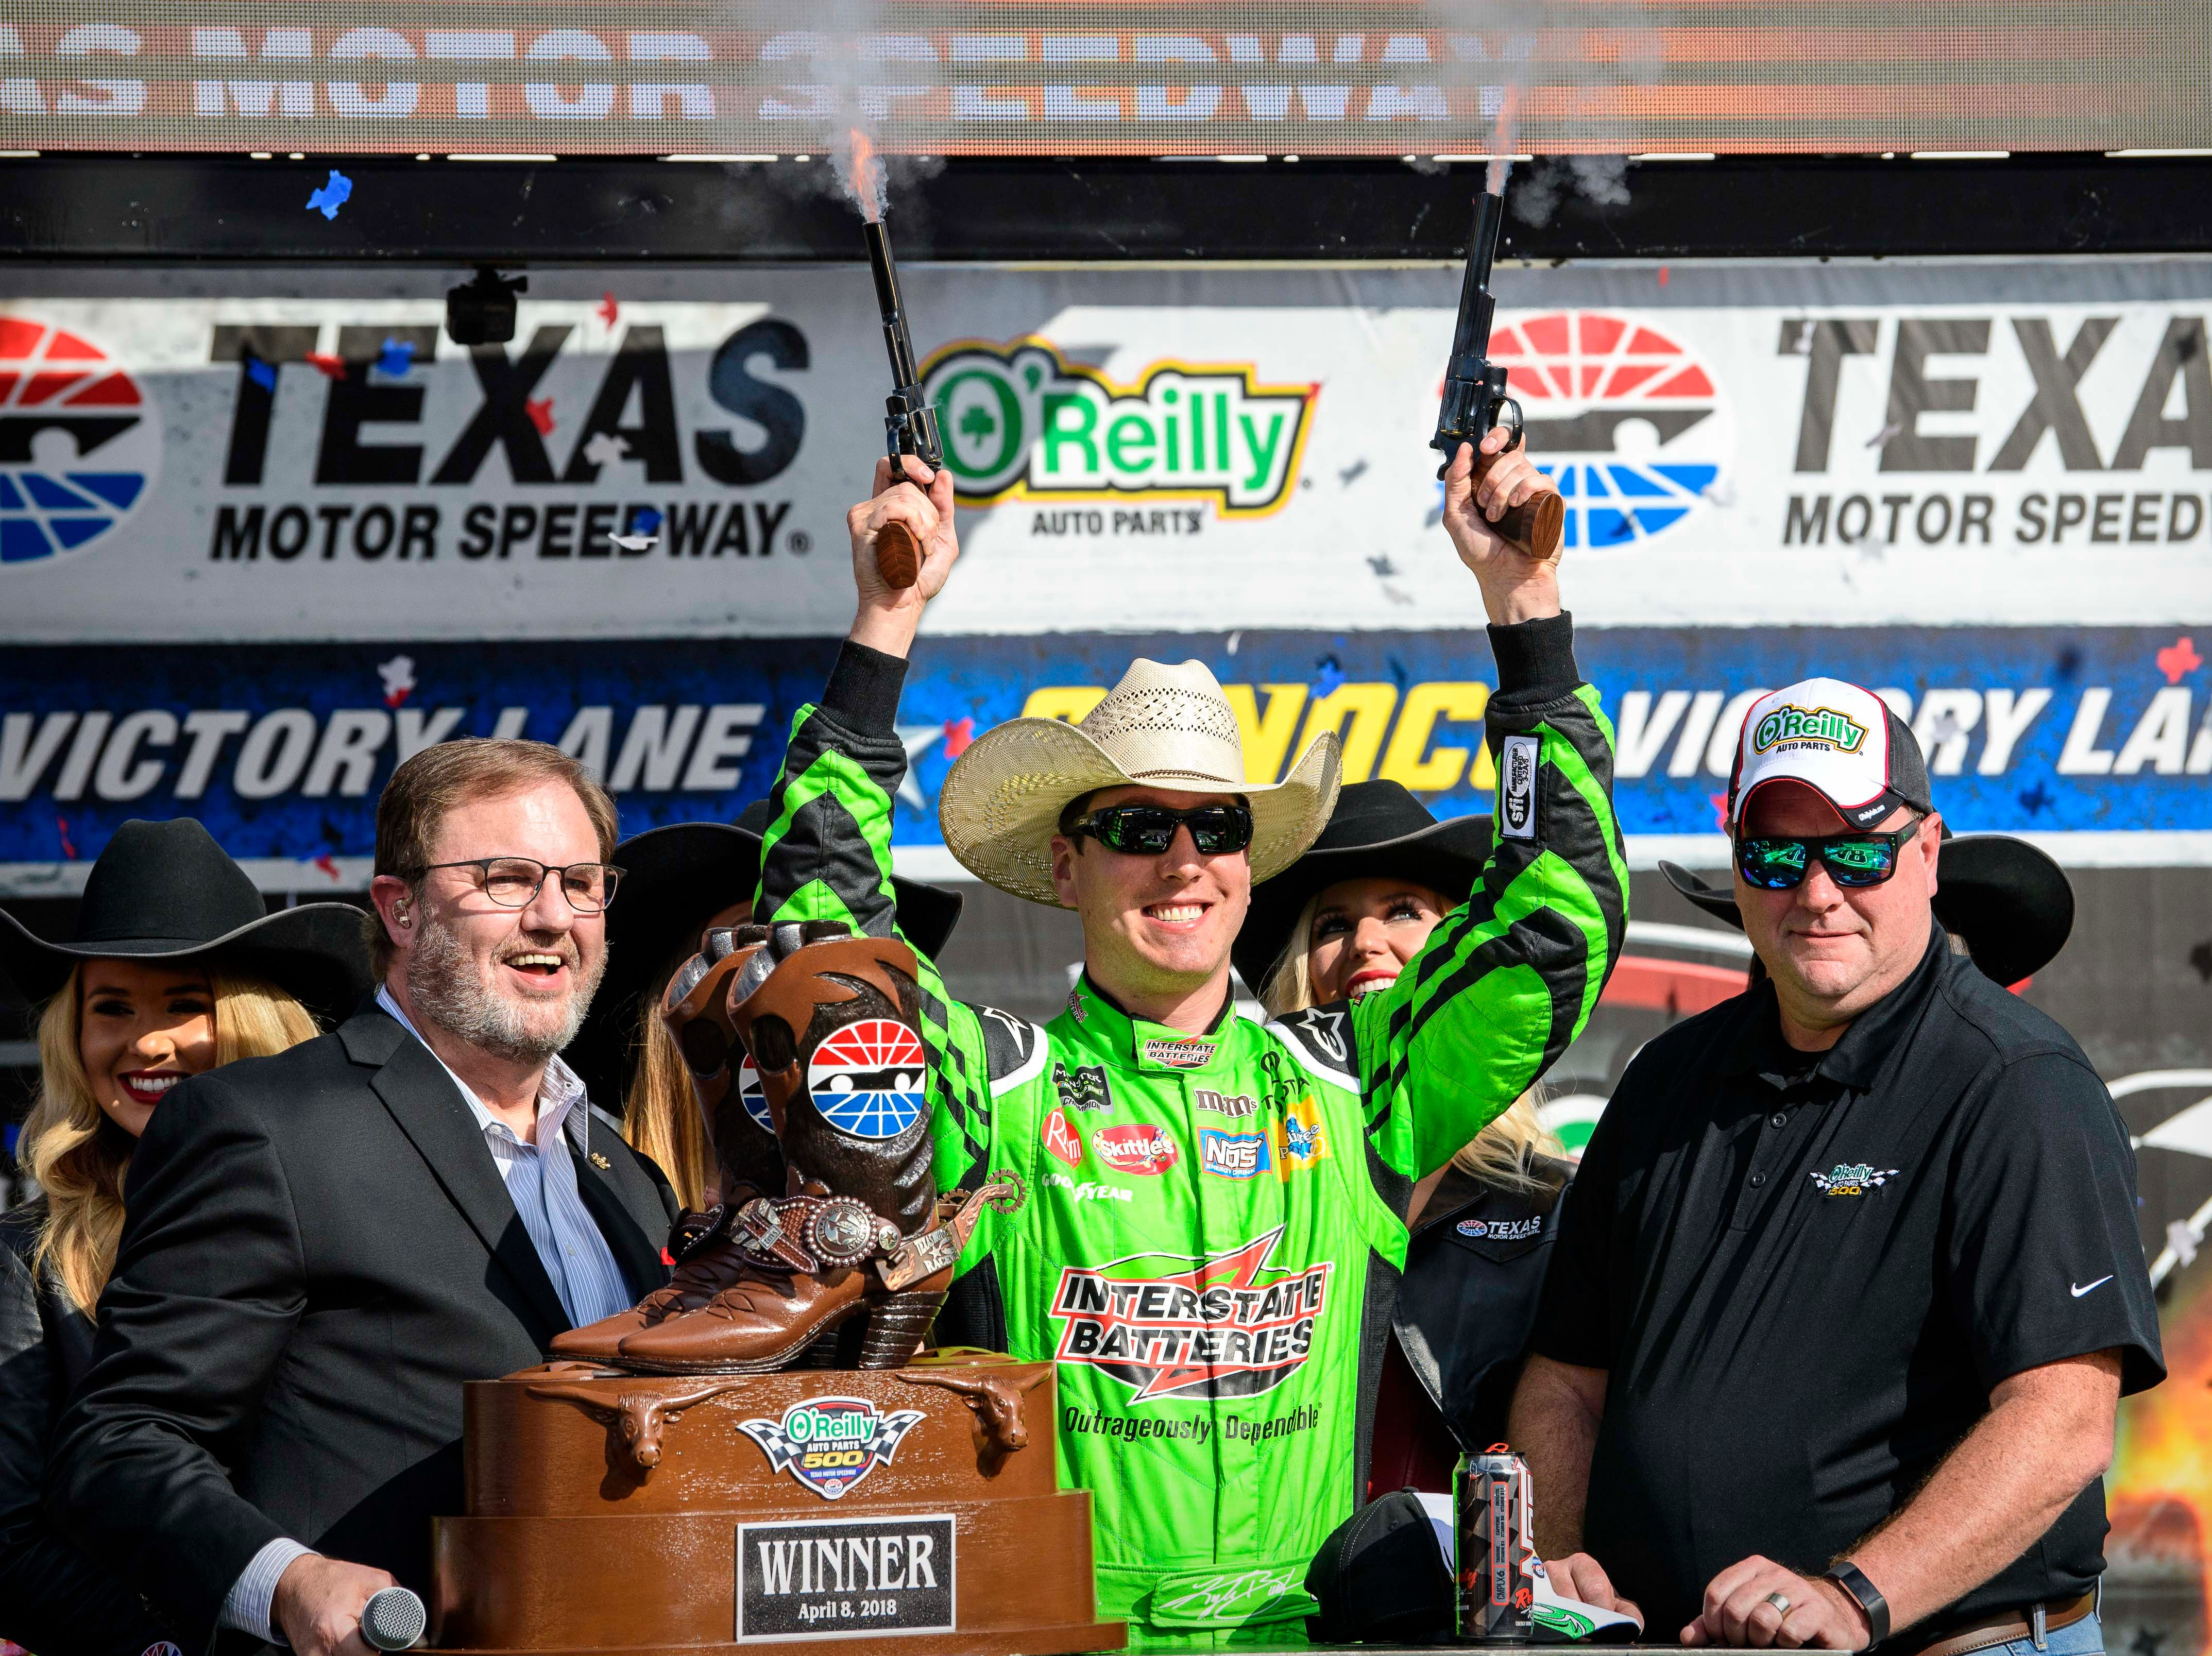 April 8: Kyle Busch fires off the six-shooter pistols after winning the O'Reilly Auto Parts 500 at Texas Motor Speedway.